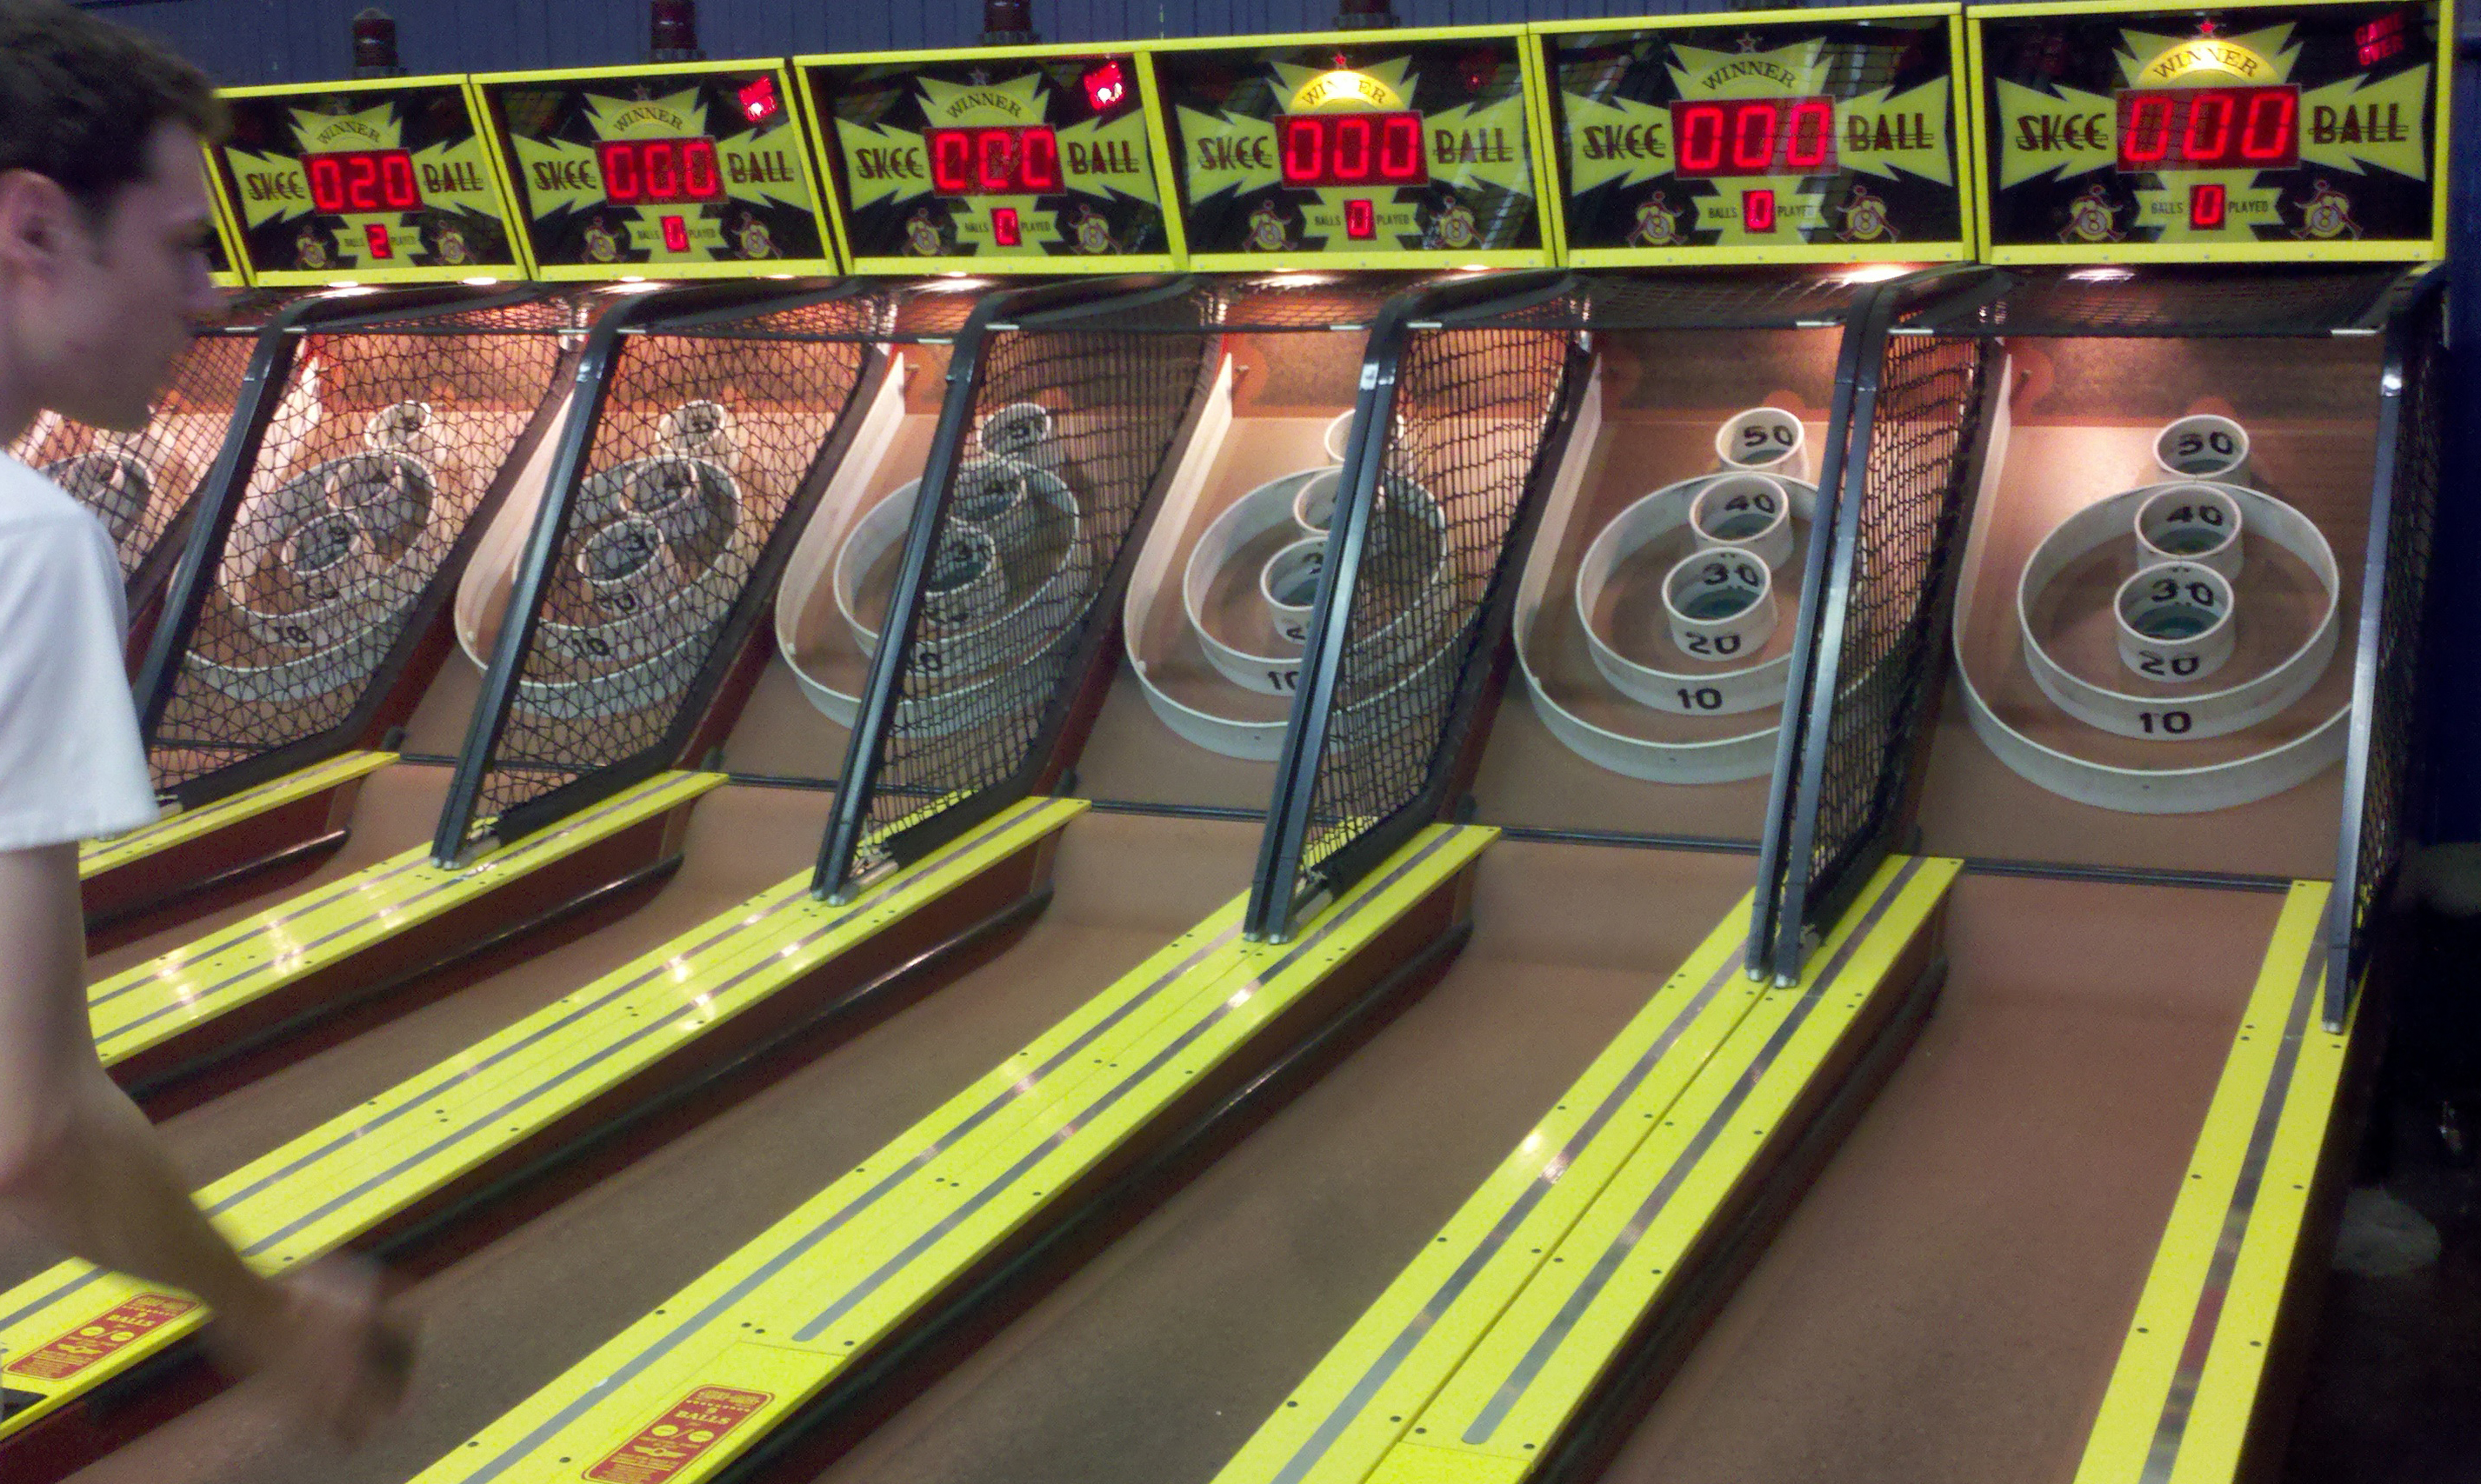 Arcade Memories: Ticket Games are Trouble